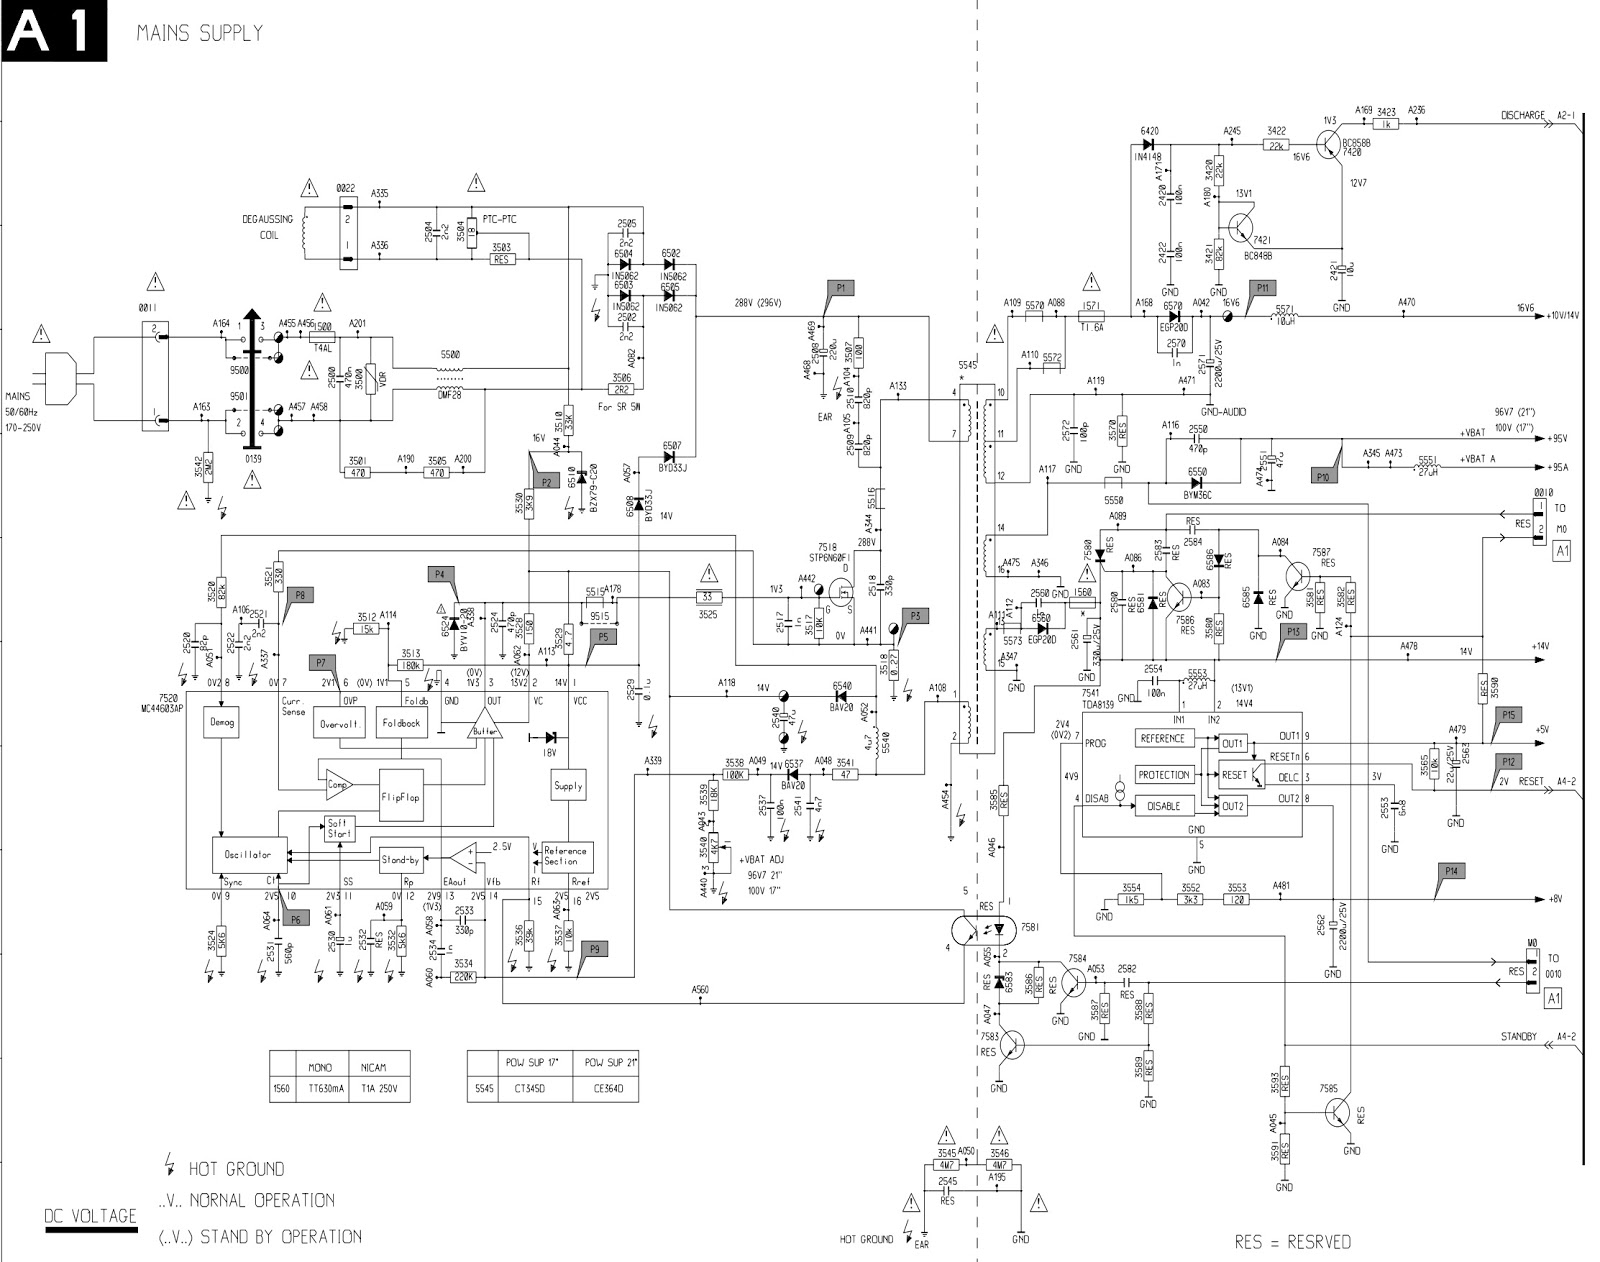 Schematic Diagrams: Philips 21PT1663 CRTTV circuit diagram